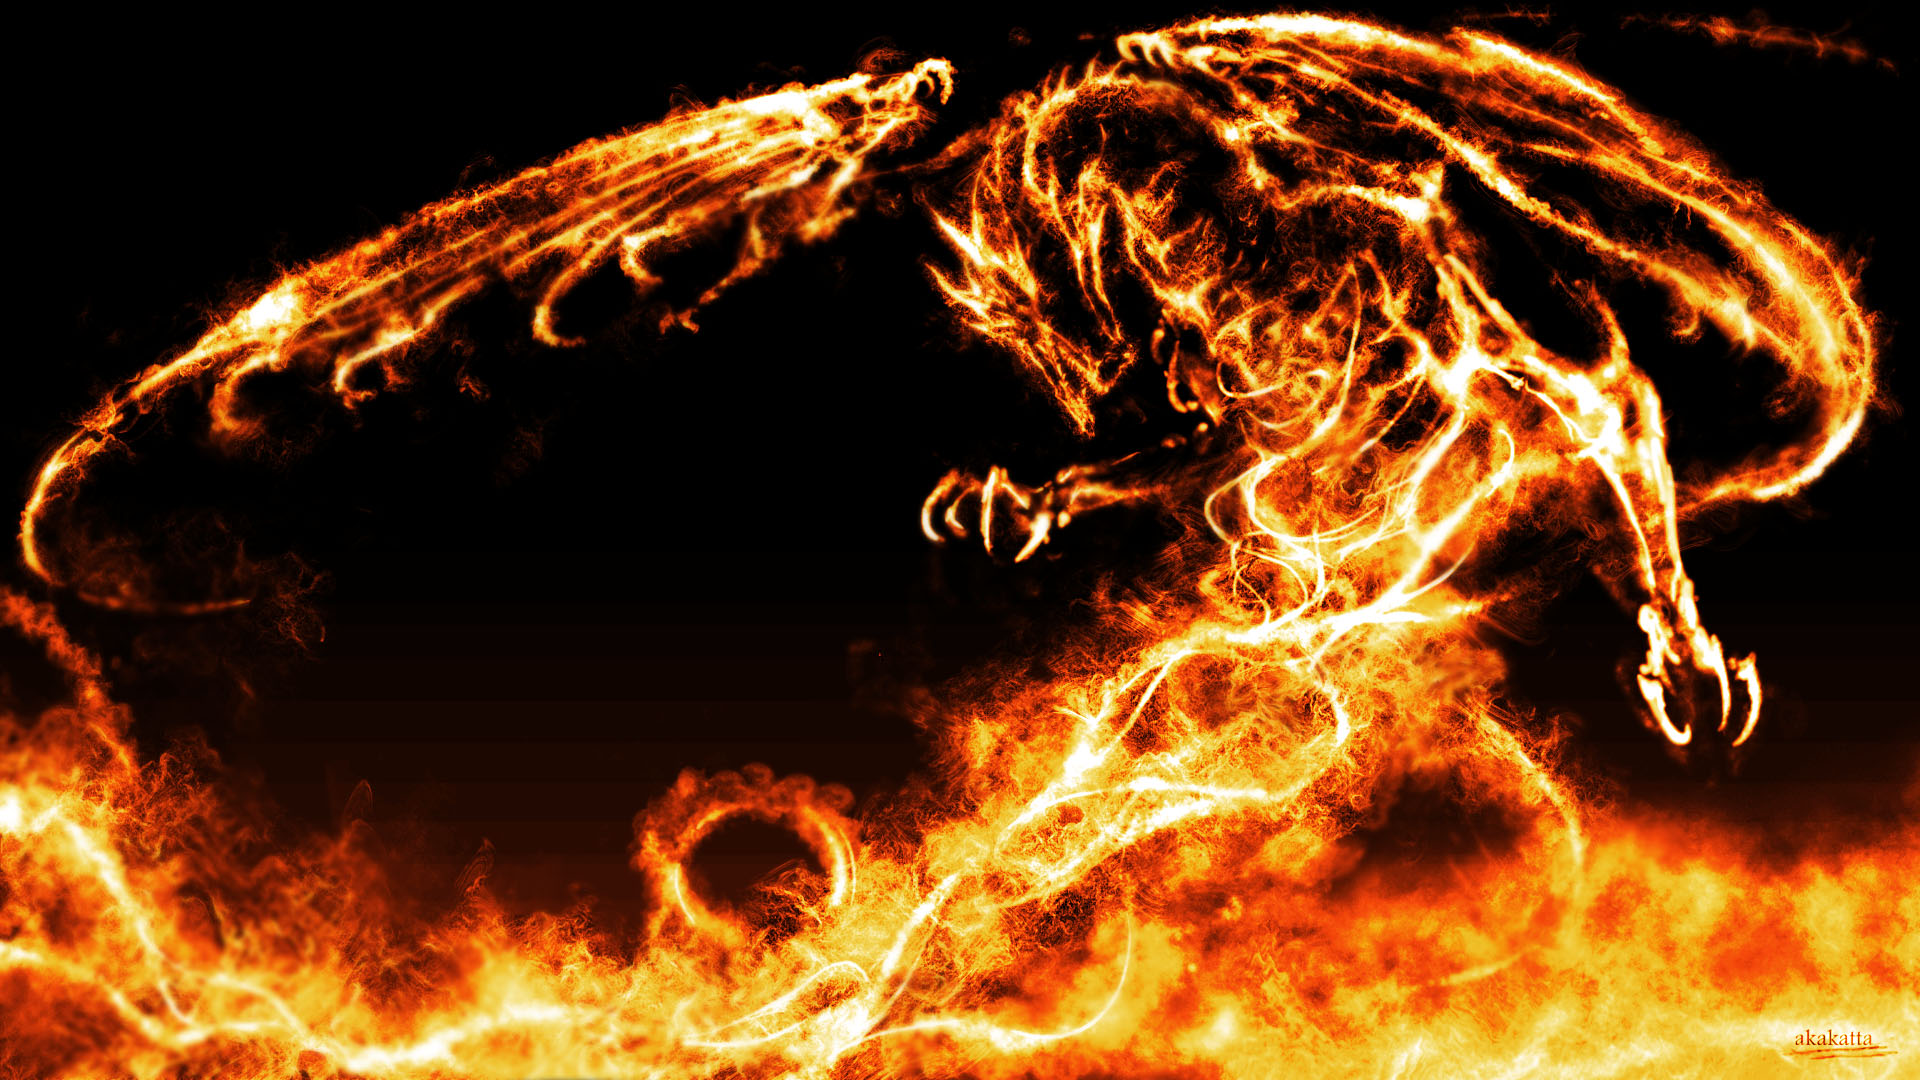 Fire and Ice Dragon Wallpapers HD wallpaper background 1920x1080